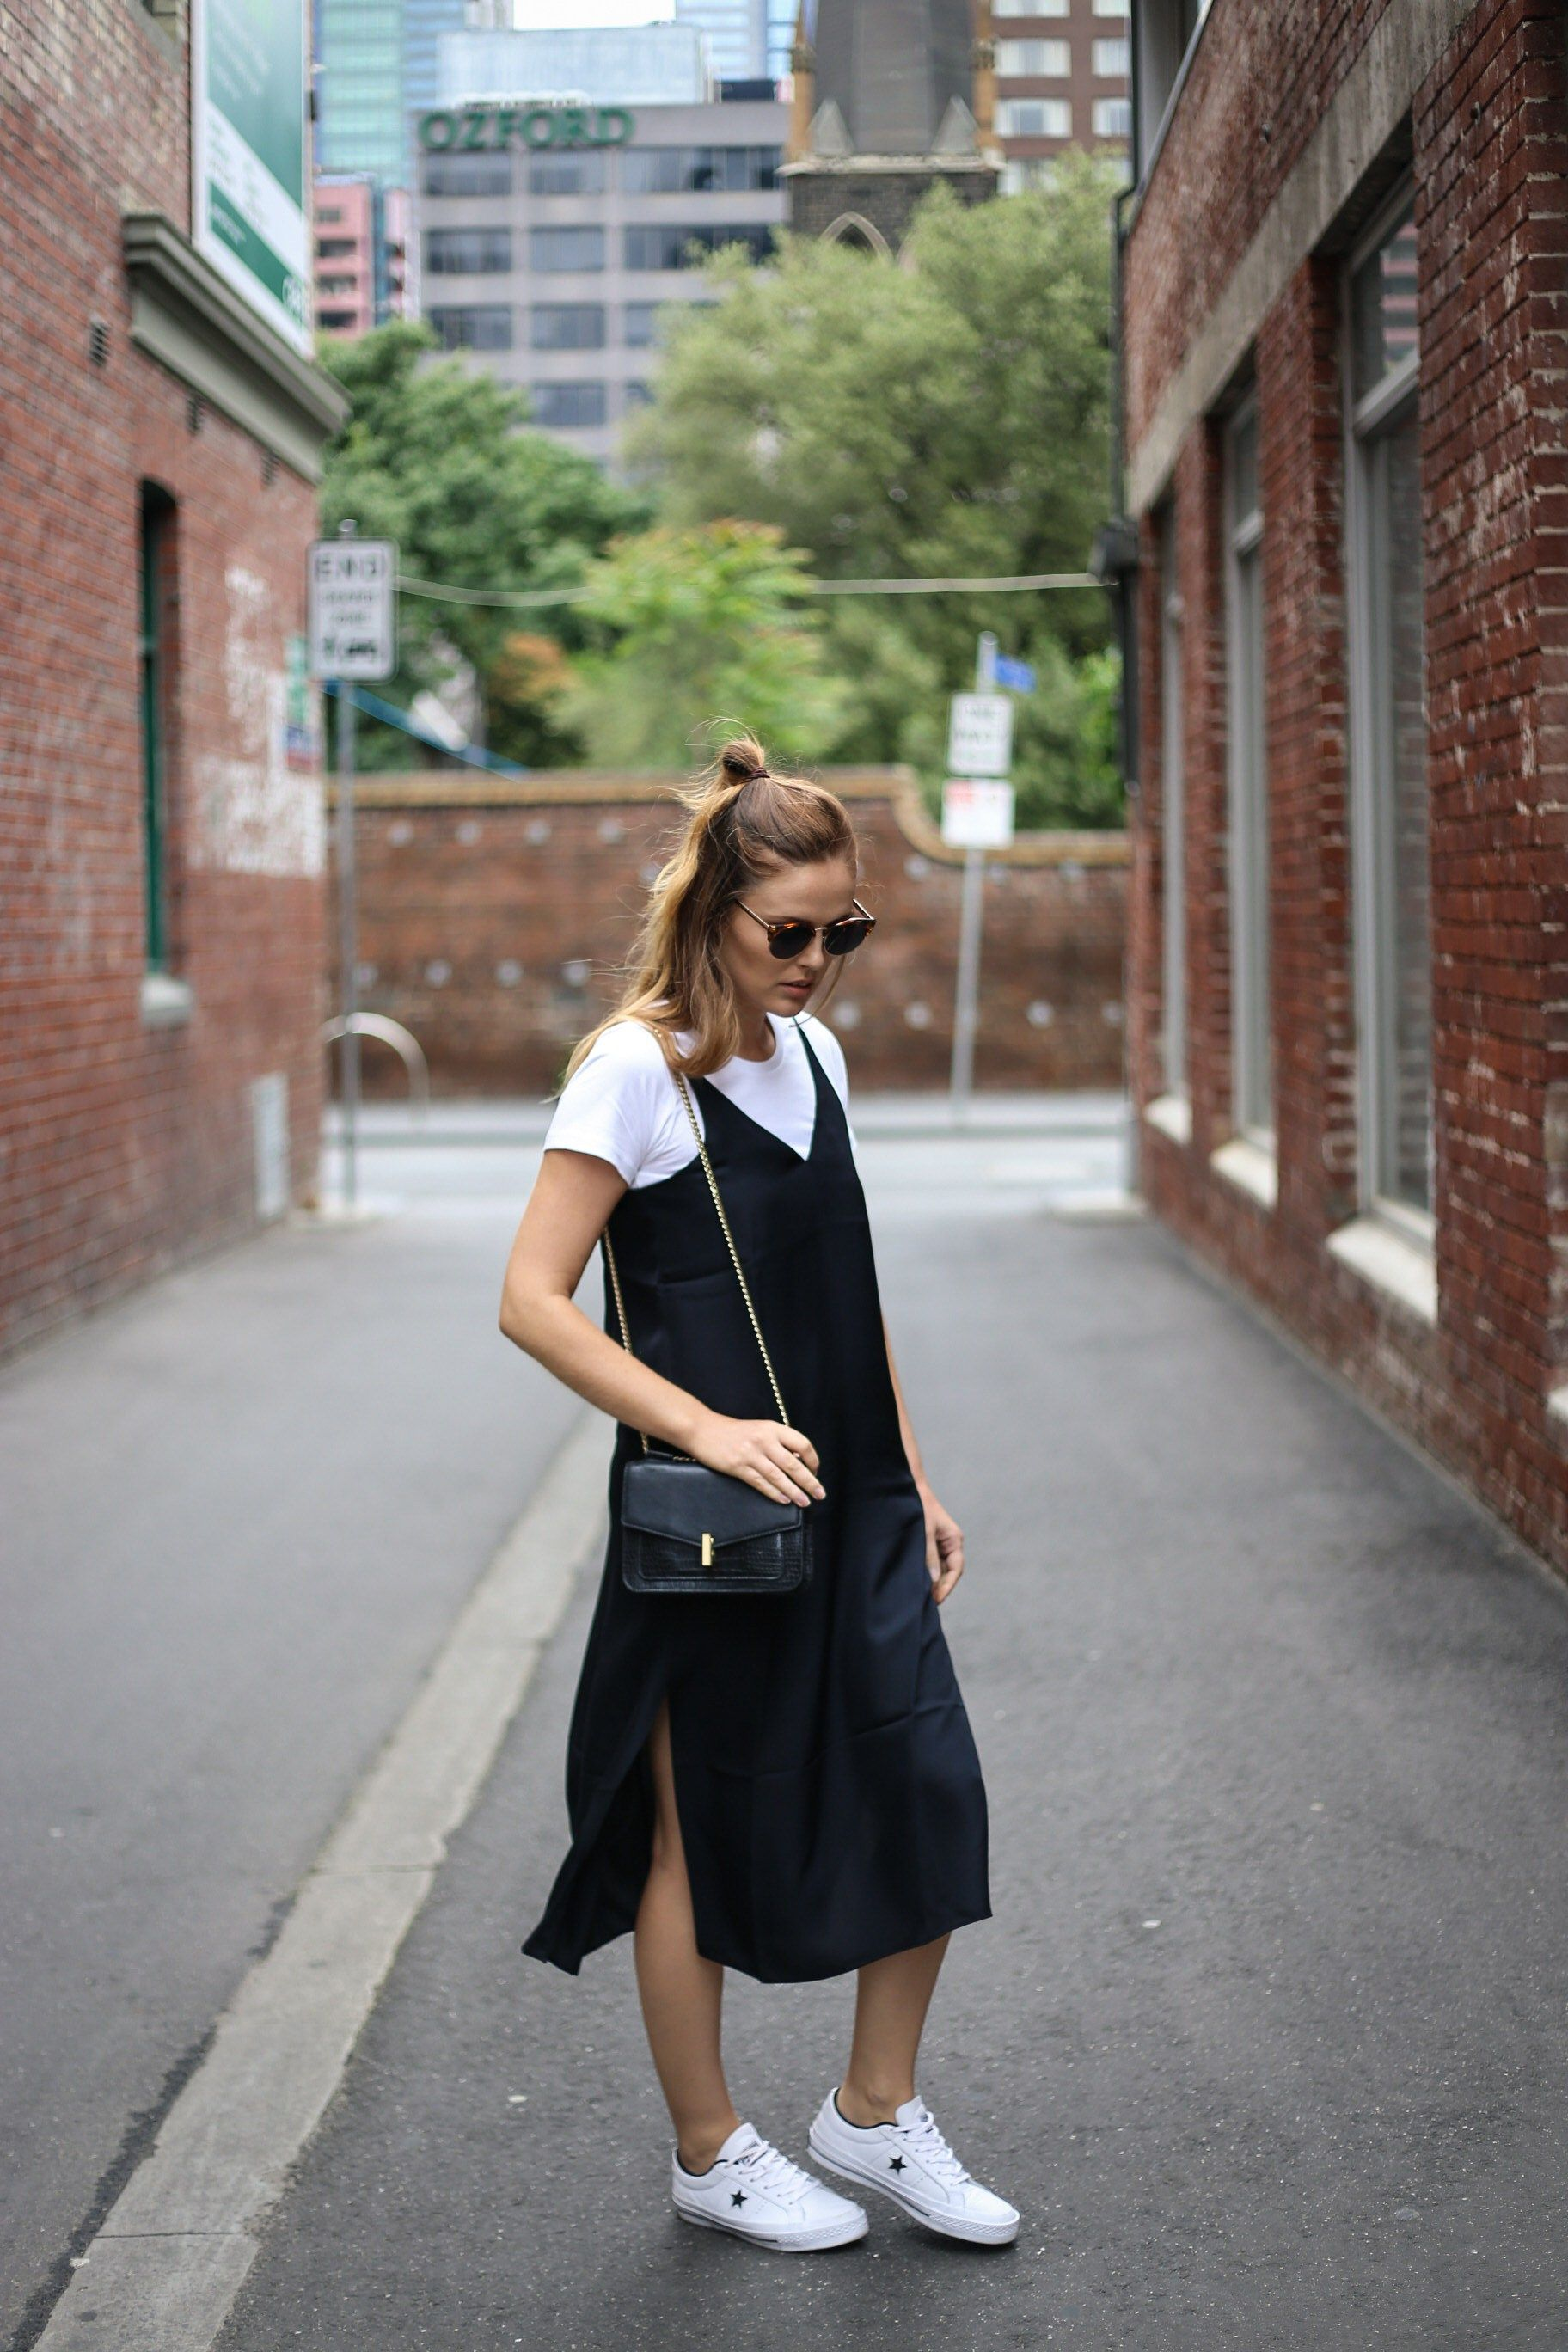 sneakers   Slip dress outfit